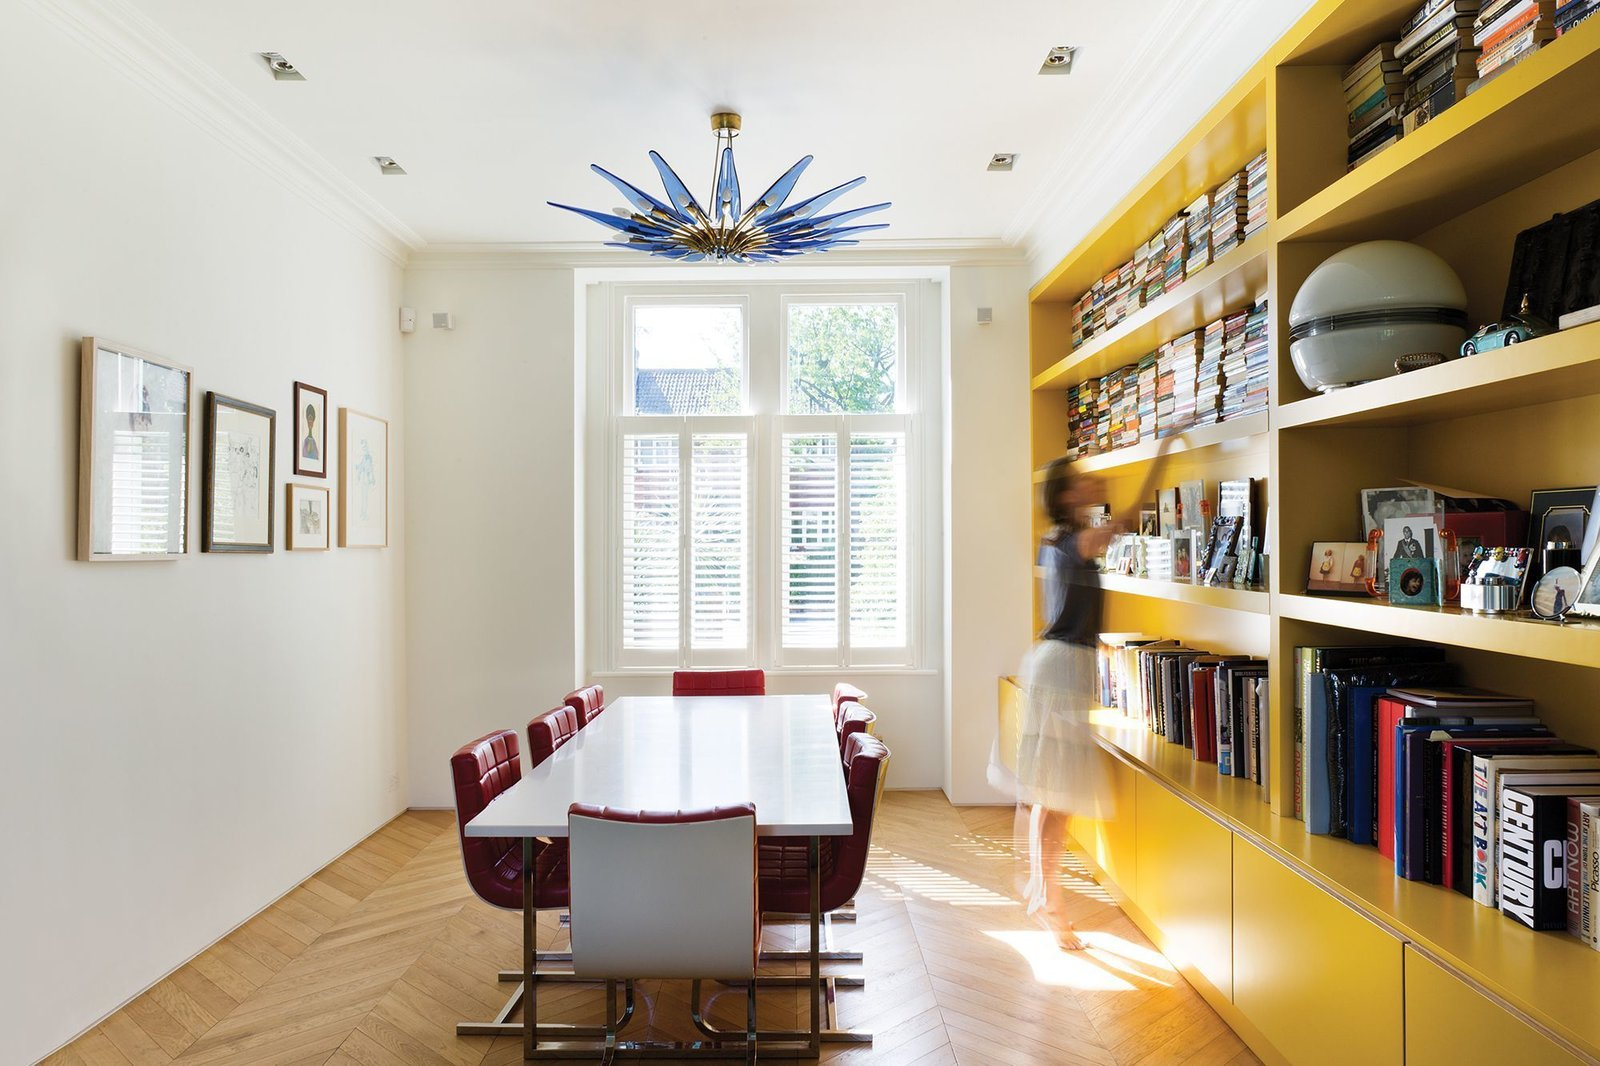 Storage, Sofa, Dining, Shelves, and Light Hardwood  Best Dining Sofa Light Hardwood Photos from Bright Bauhaus Colors Fill This Brick Edwardian House in London